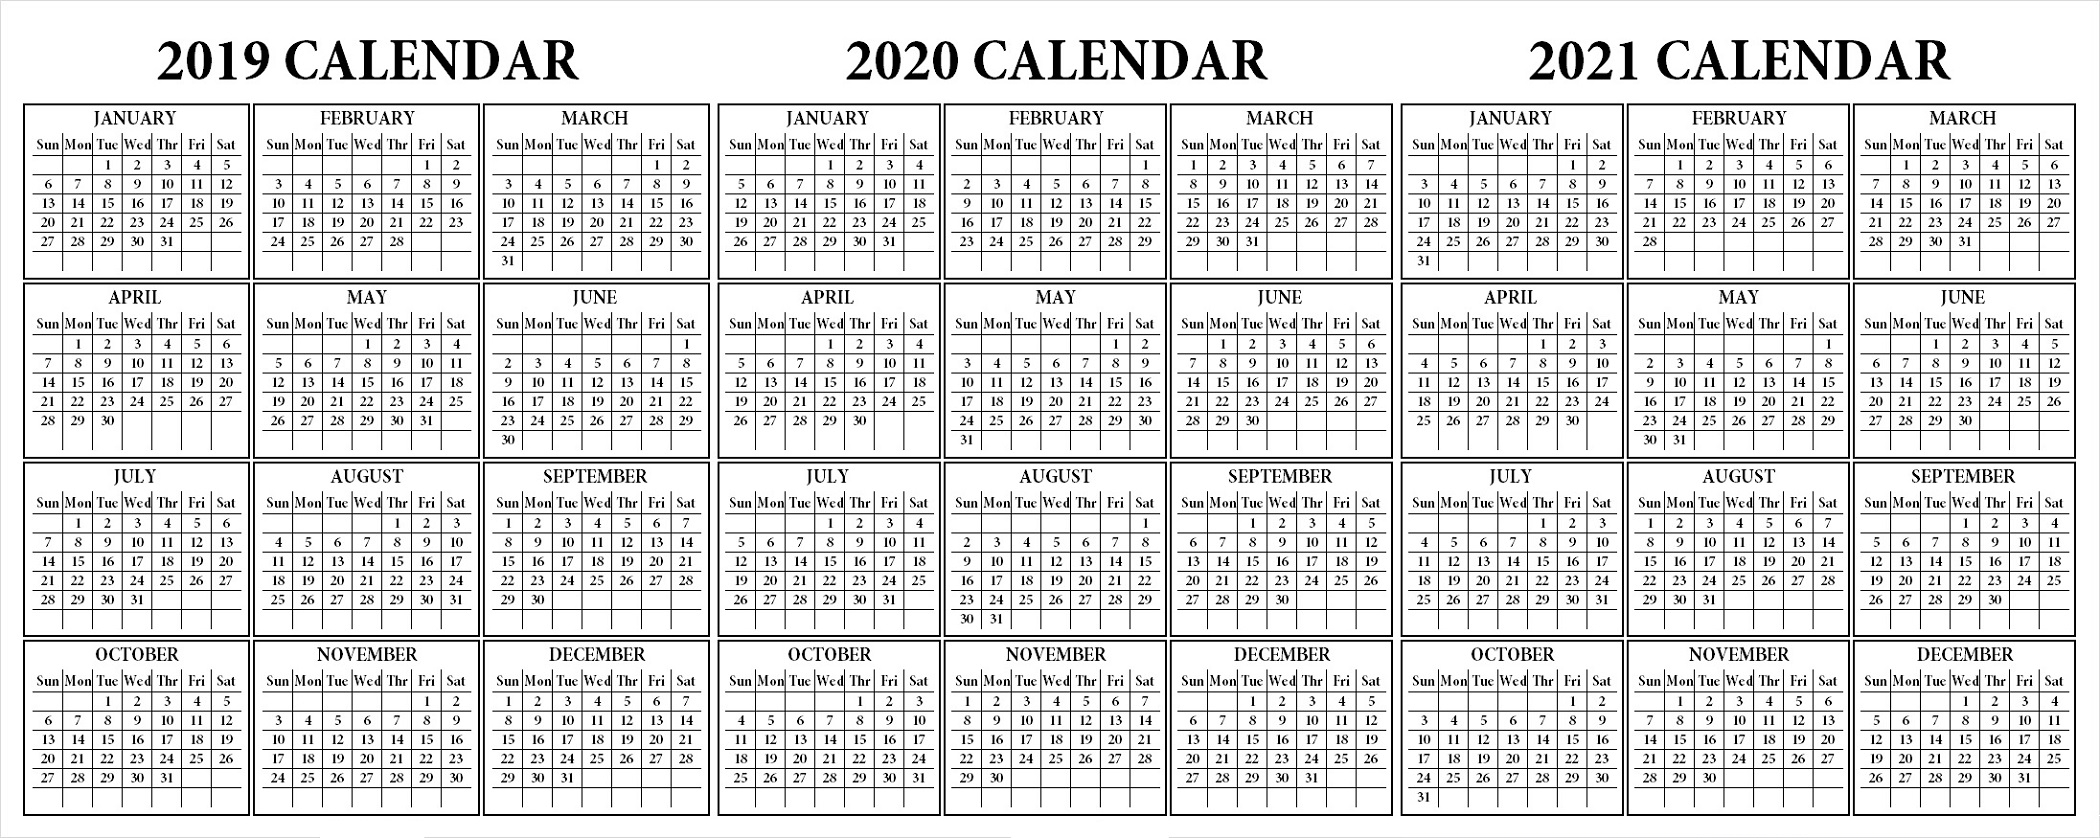 3 Year Calendar Printable 2019 2020 2021 For All Ages For Desk